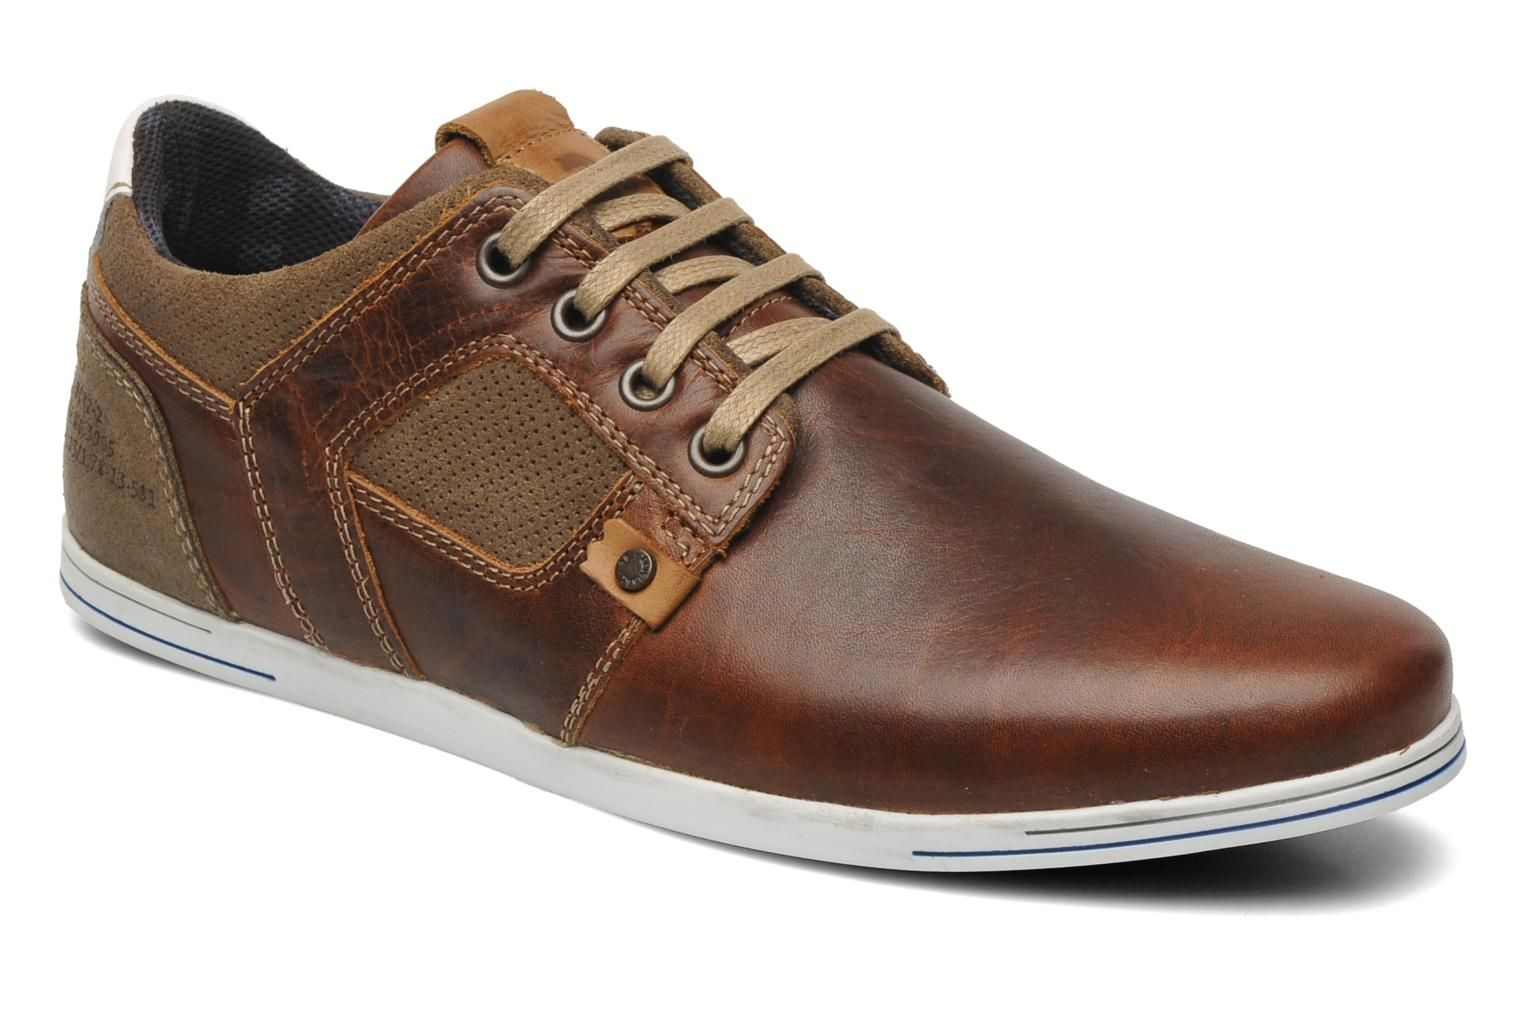 Quince by Bullboxer (Brown) | Sarenza UK | Your Trainers Quince Bullboxer delivered for Free